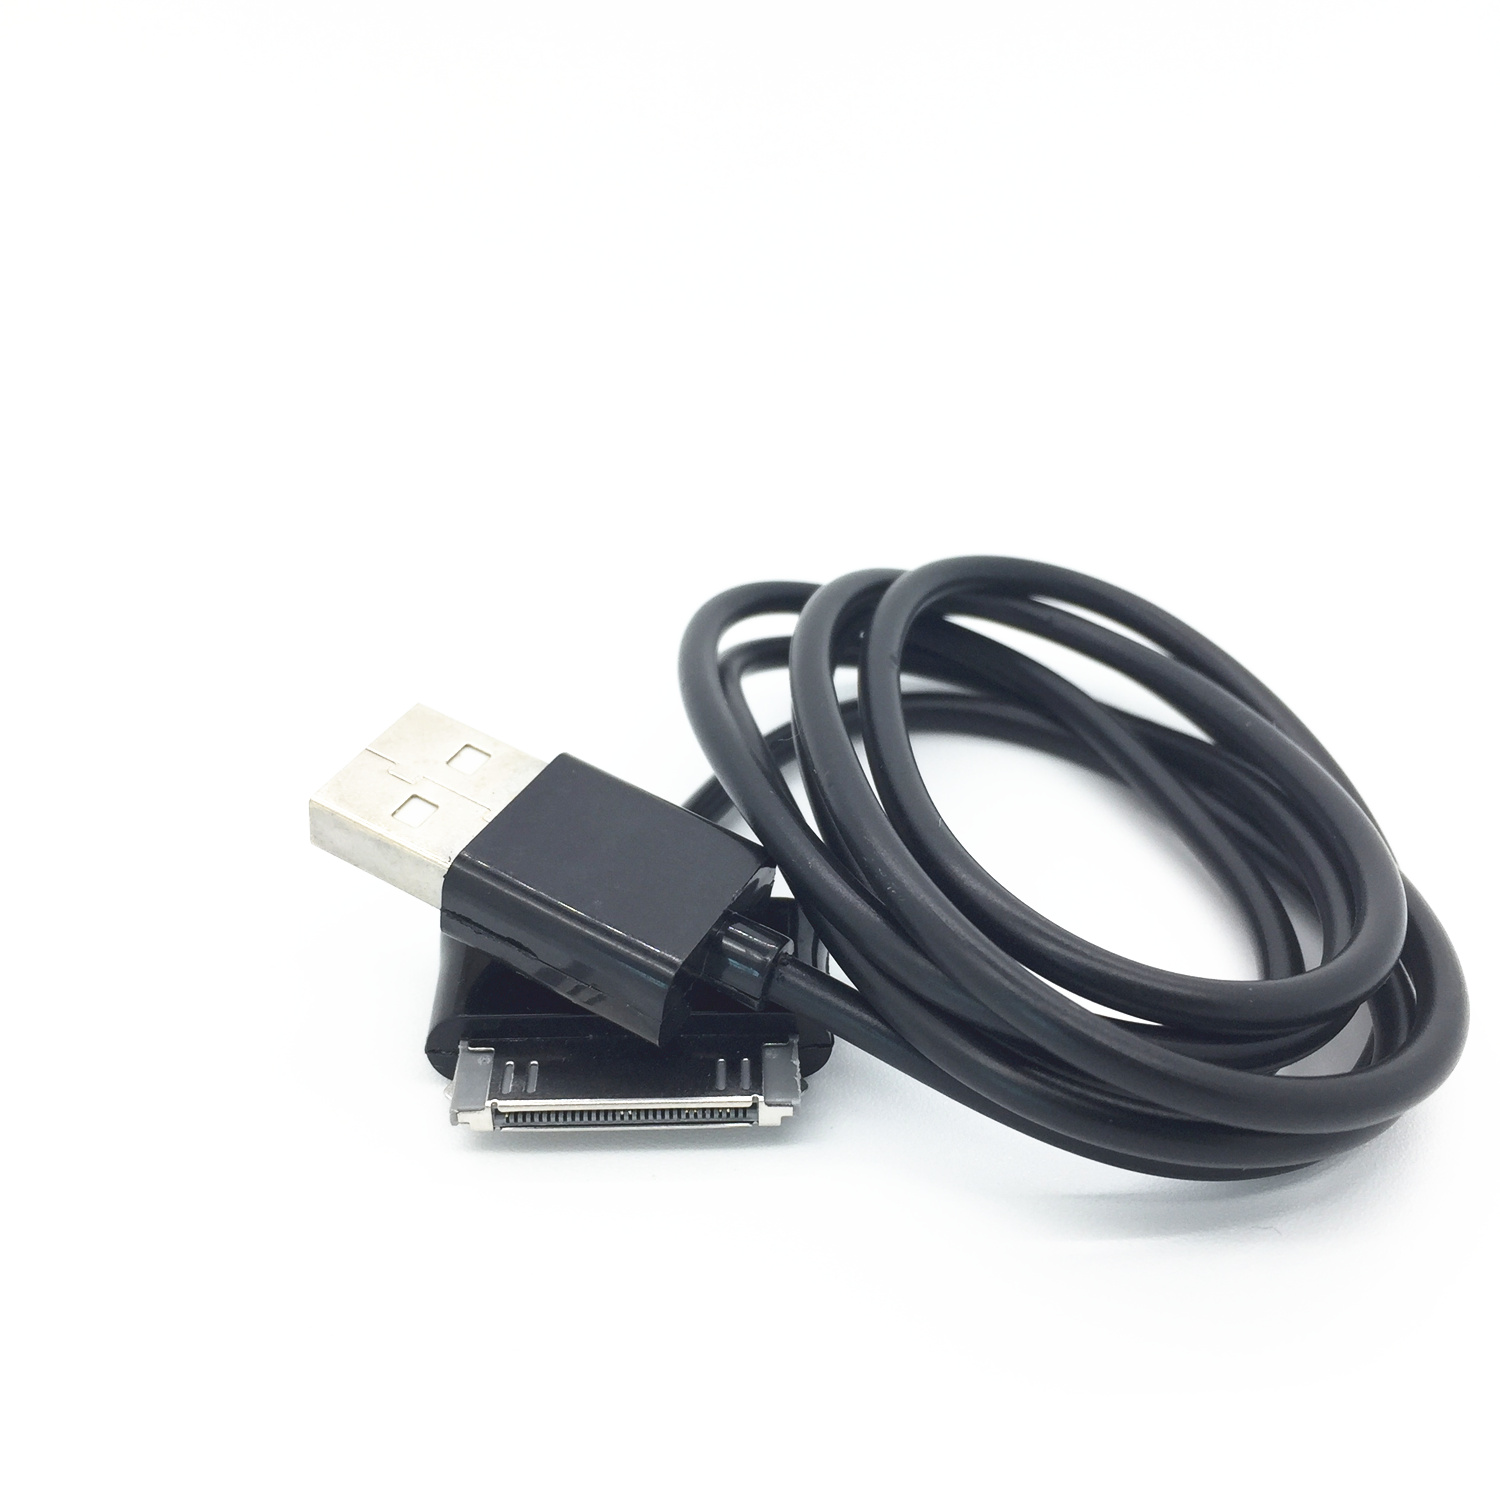 30PIN Usb Wall Charger Data Black Cable For Samsung Galaxy P739 P7300 P7310 P7510 Etc